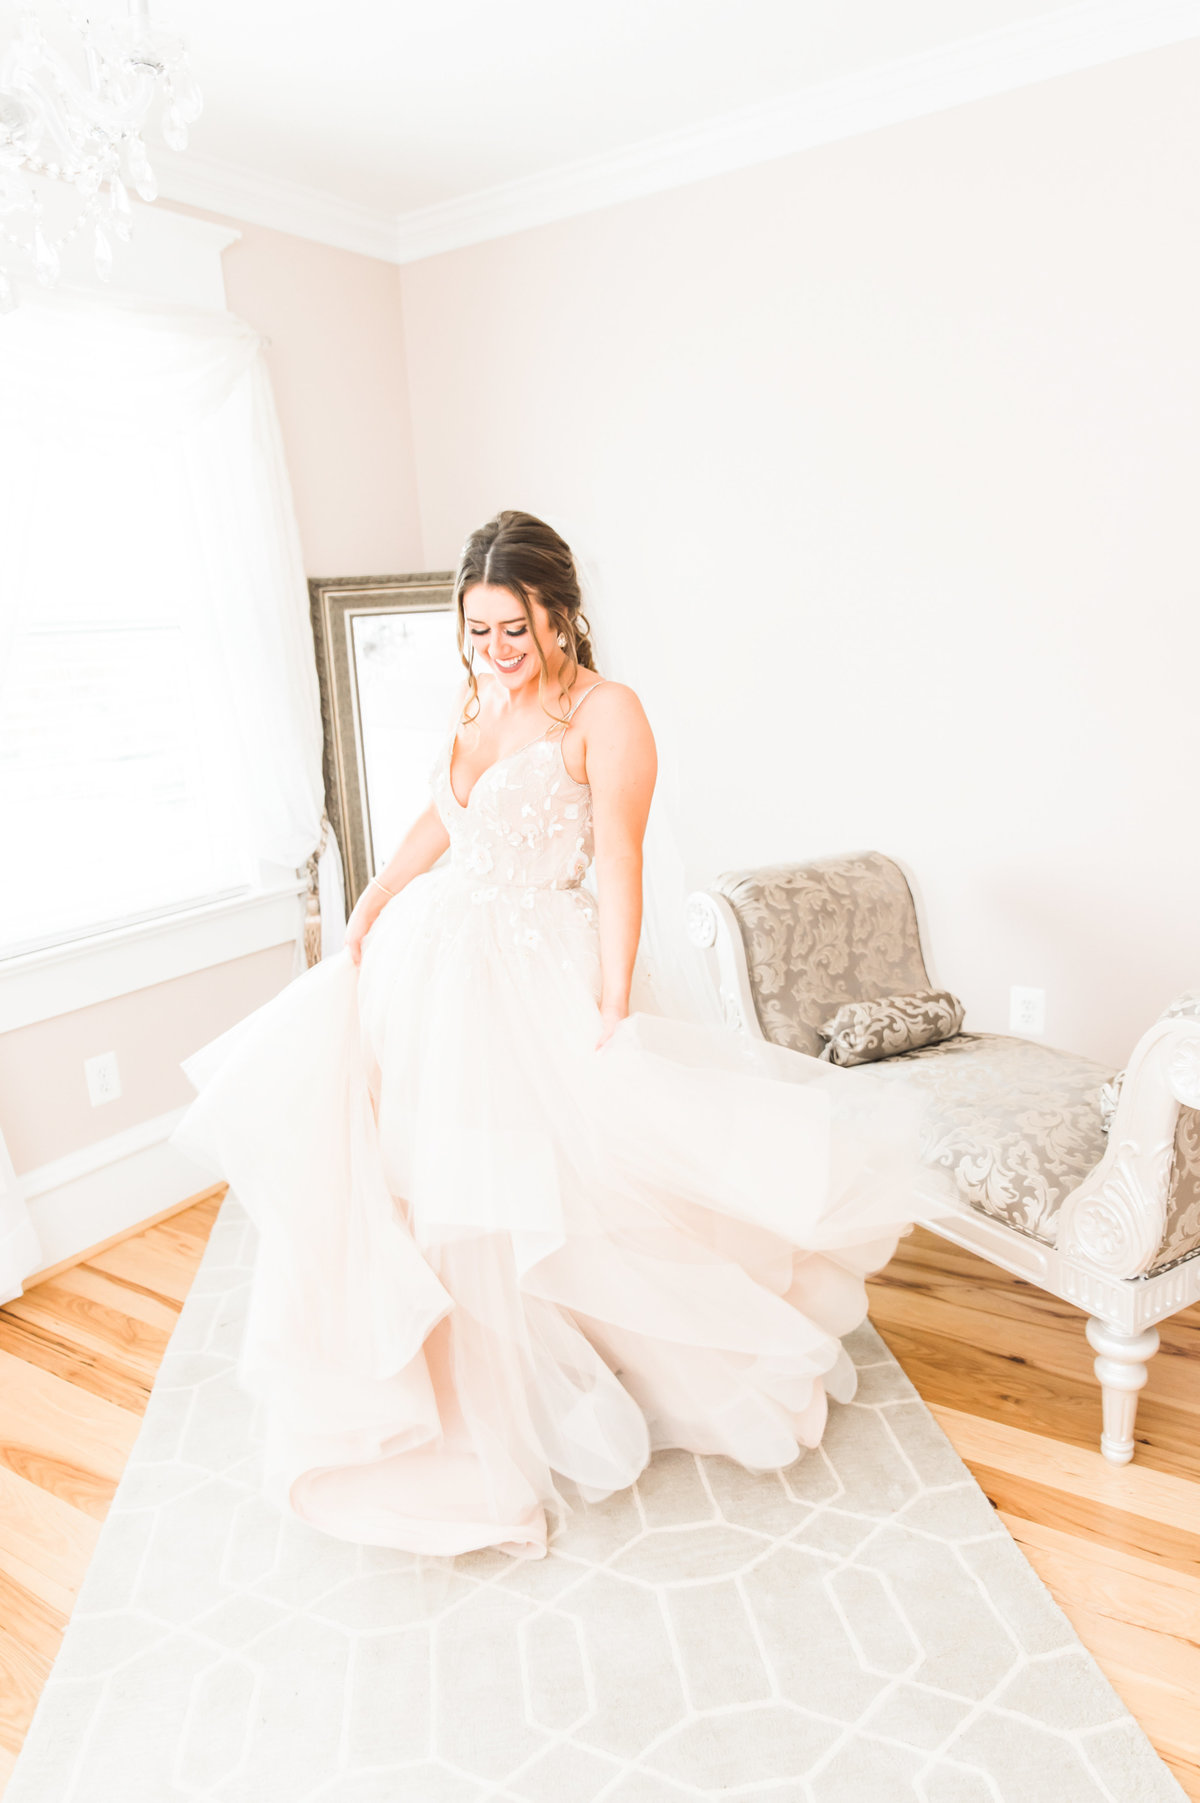 Walden Hall Wedding Photographer - M Harris Studios-259